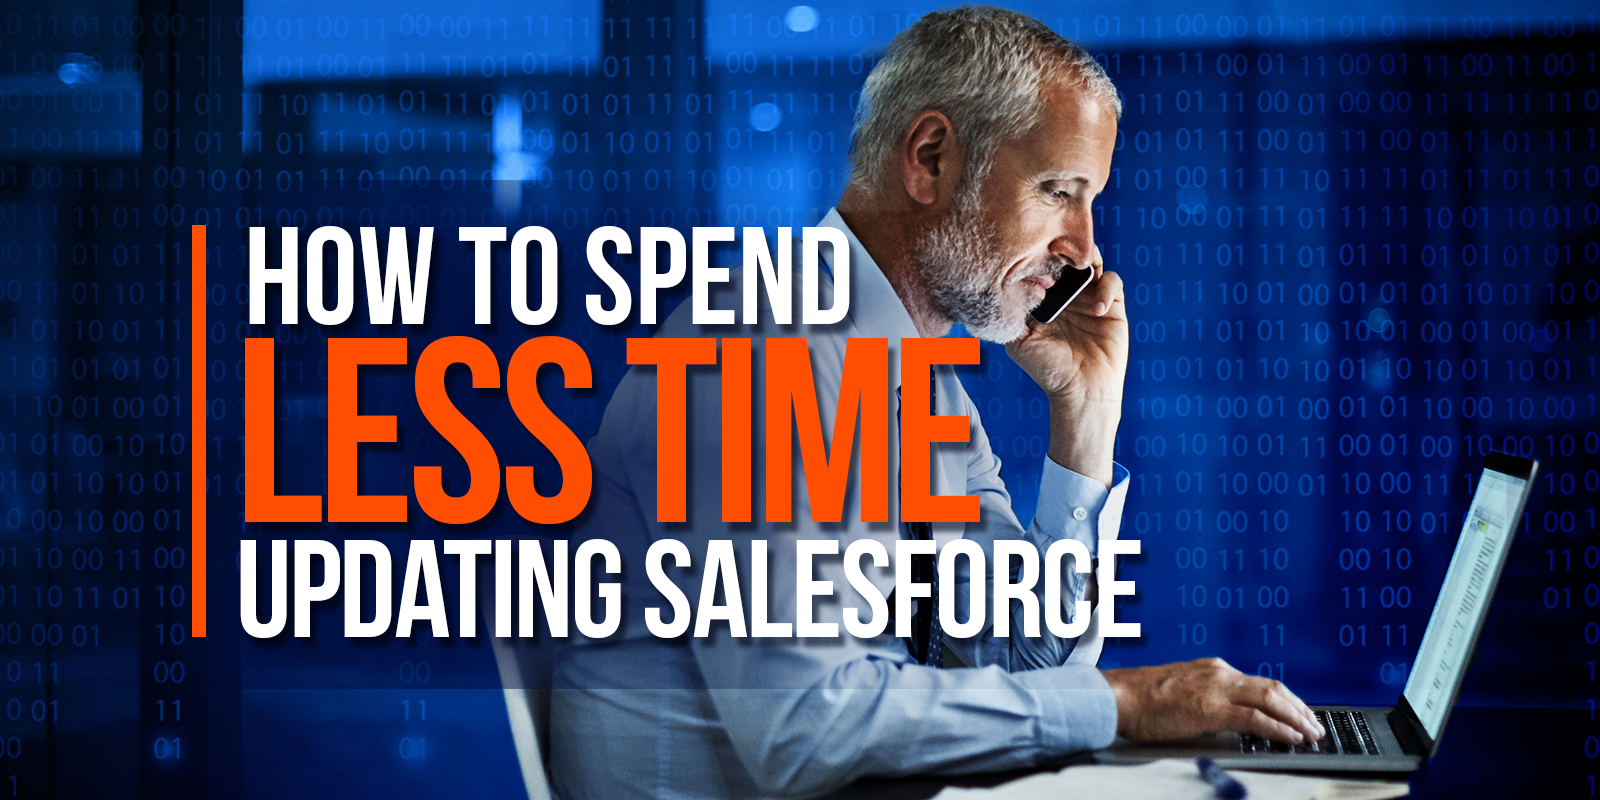 How To Spend Less Time Updating Salesforce